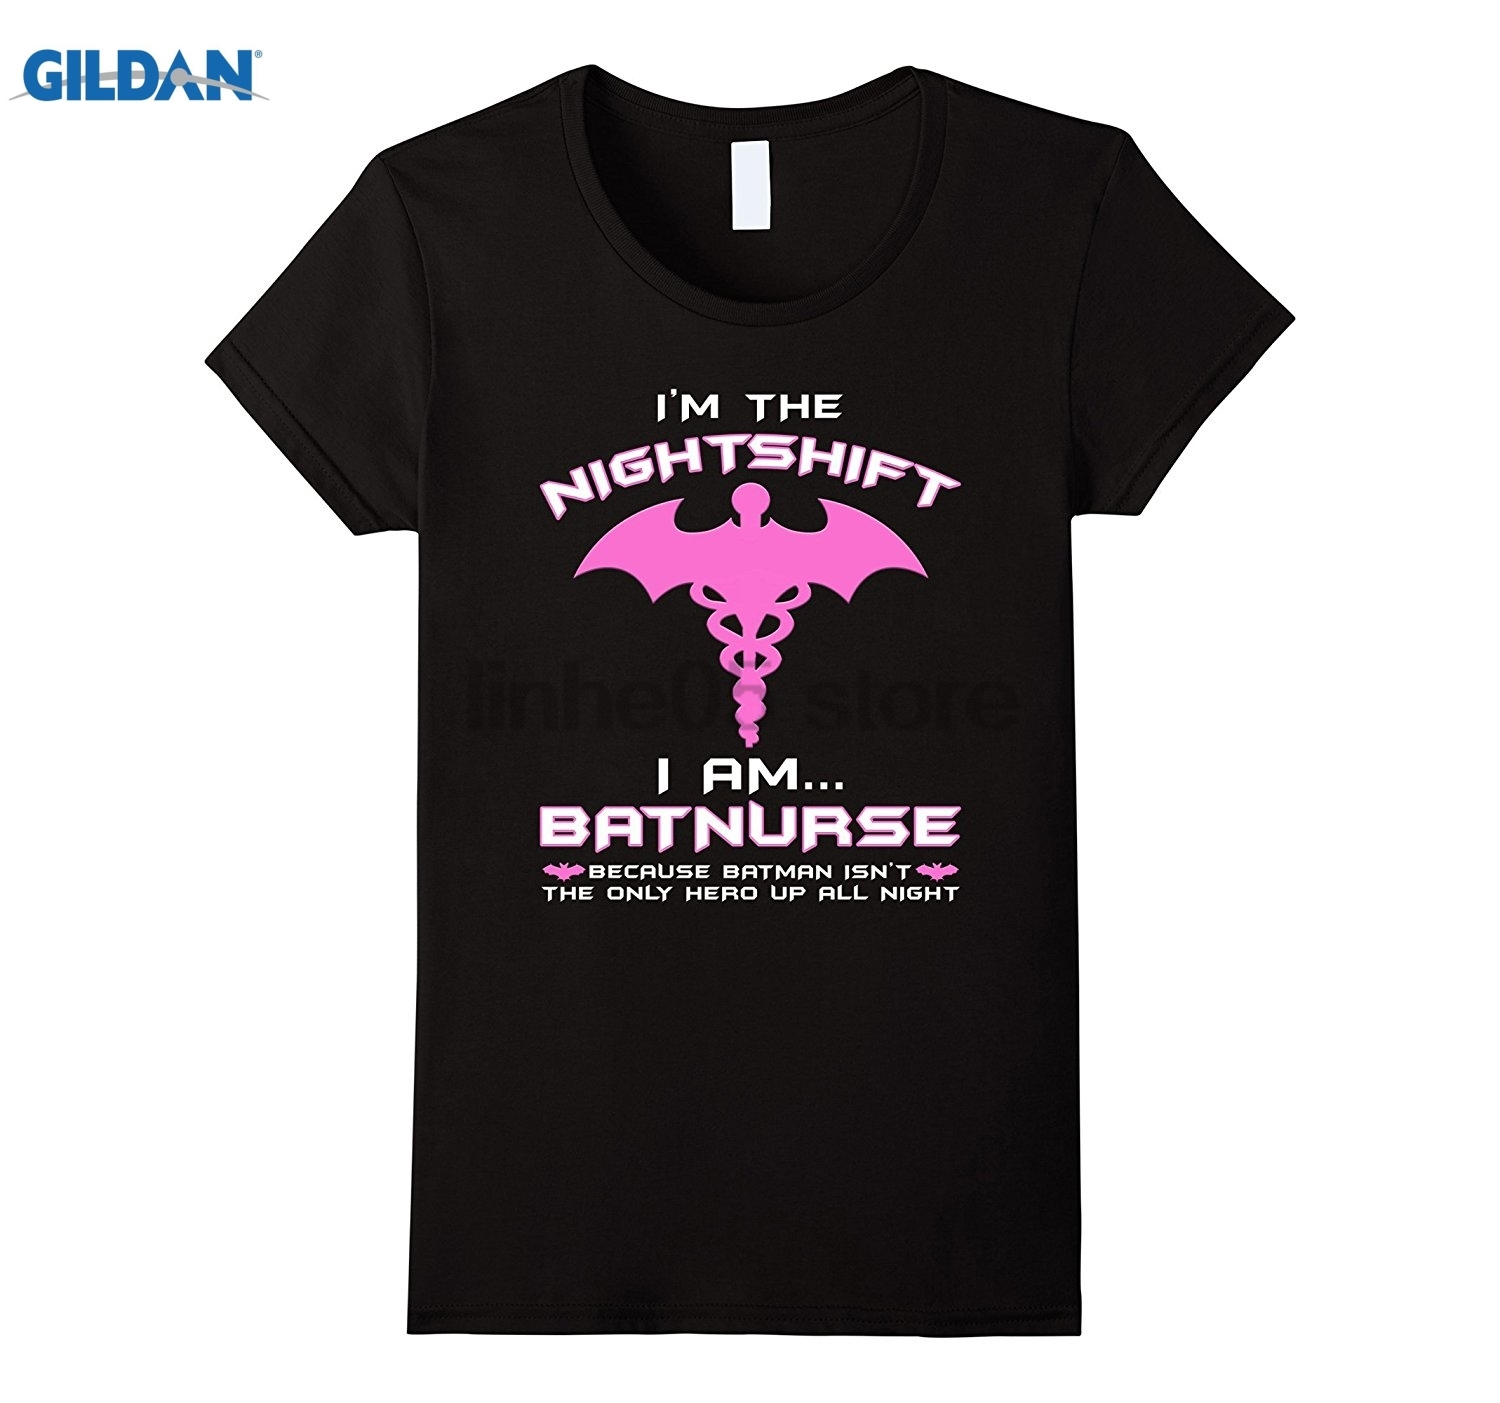 GILDAN Womens Im The Nightshift Batnurse Nursing RN Women T-Shirt dress T-shirt ...